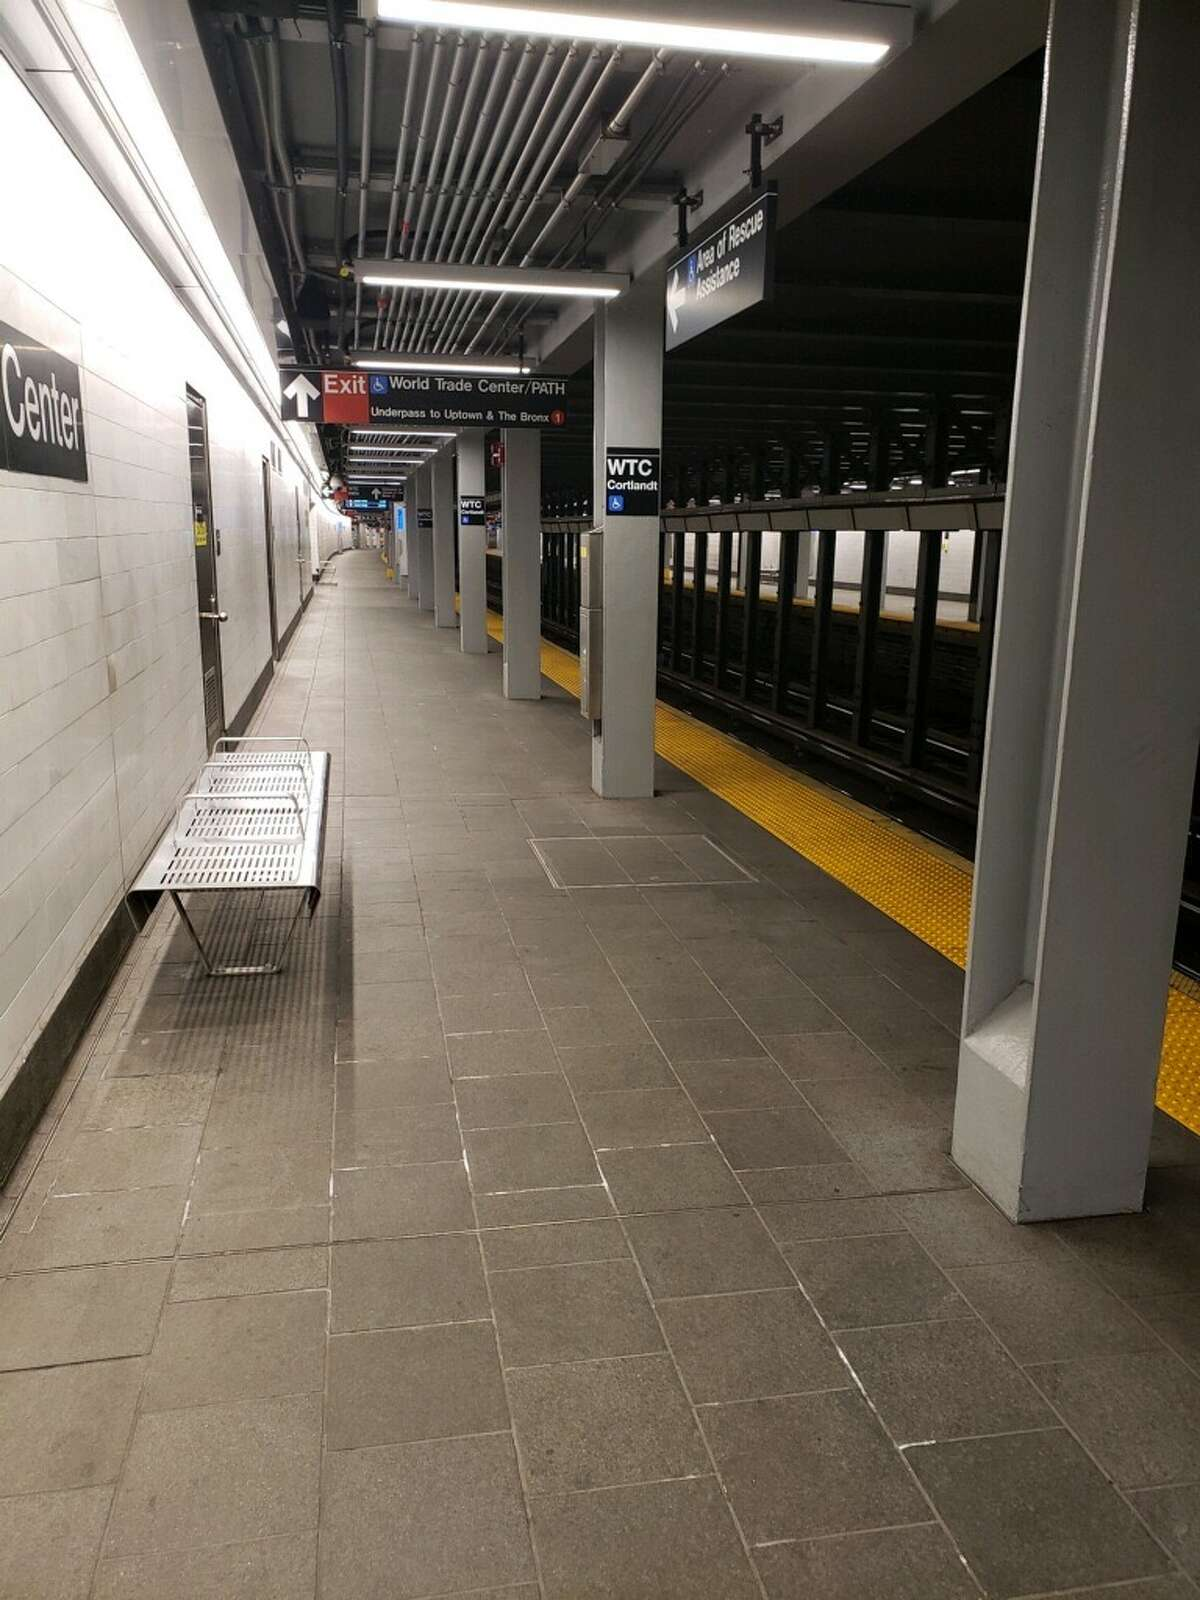 An empty subway platform in New York City in early April, when the coronavirus pandemic forced millions of residents in the city into lockdown. (Provided by Janice Ceccucci)